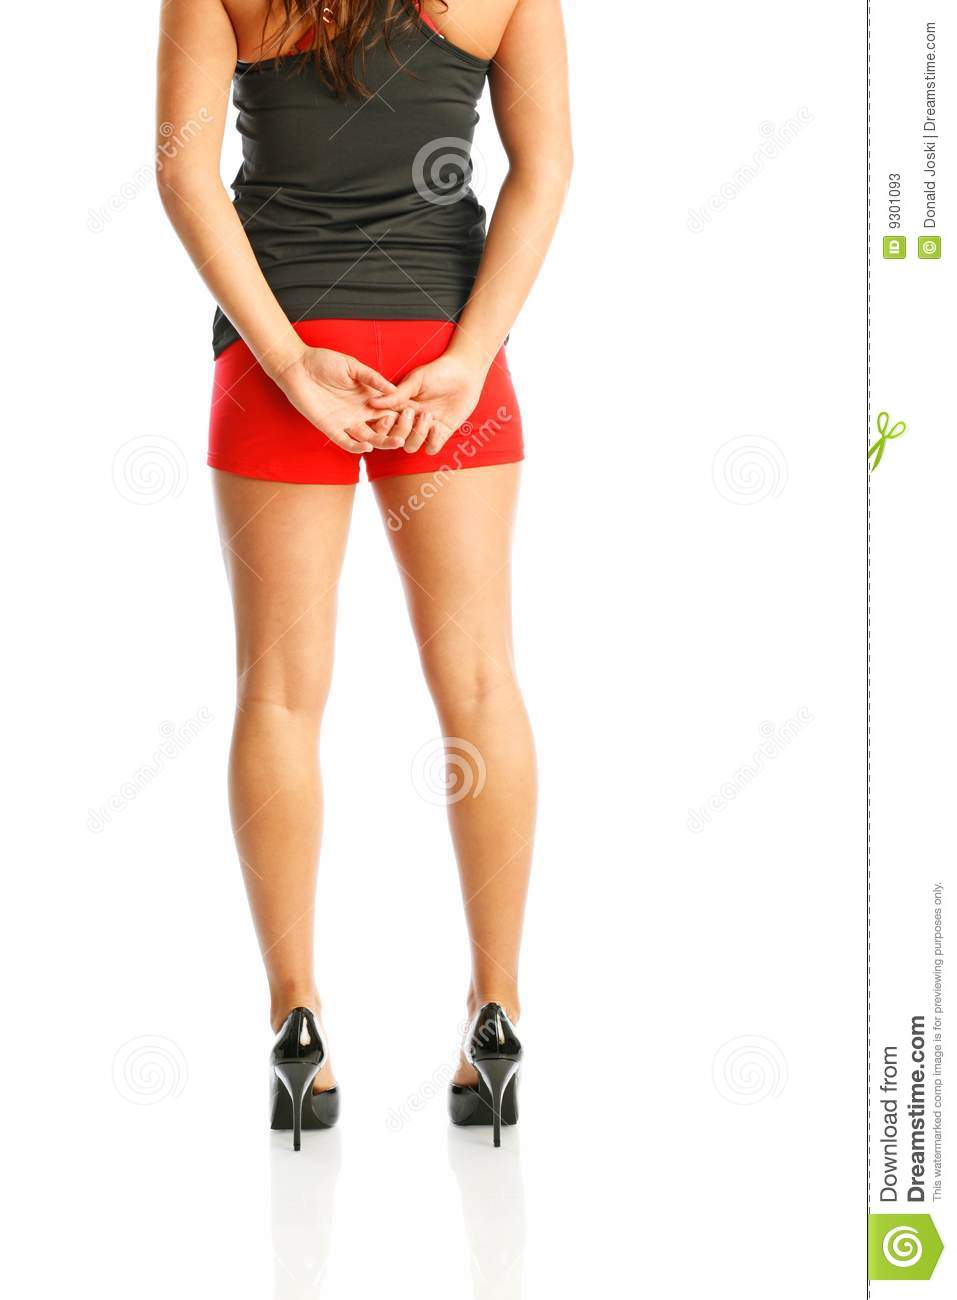 Girl Sitting On Ball For Exercise Stock Image - Image of